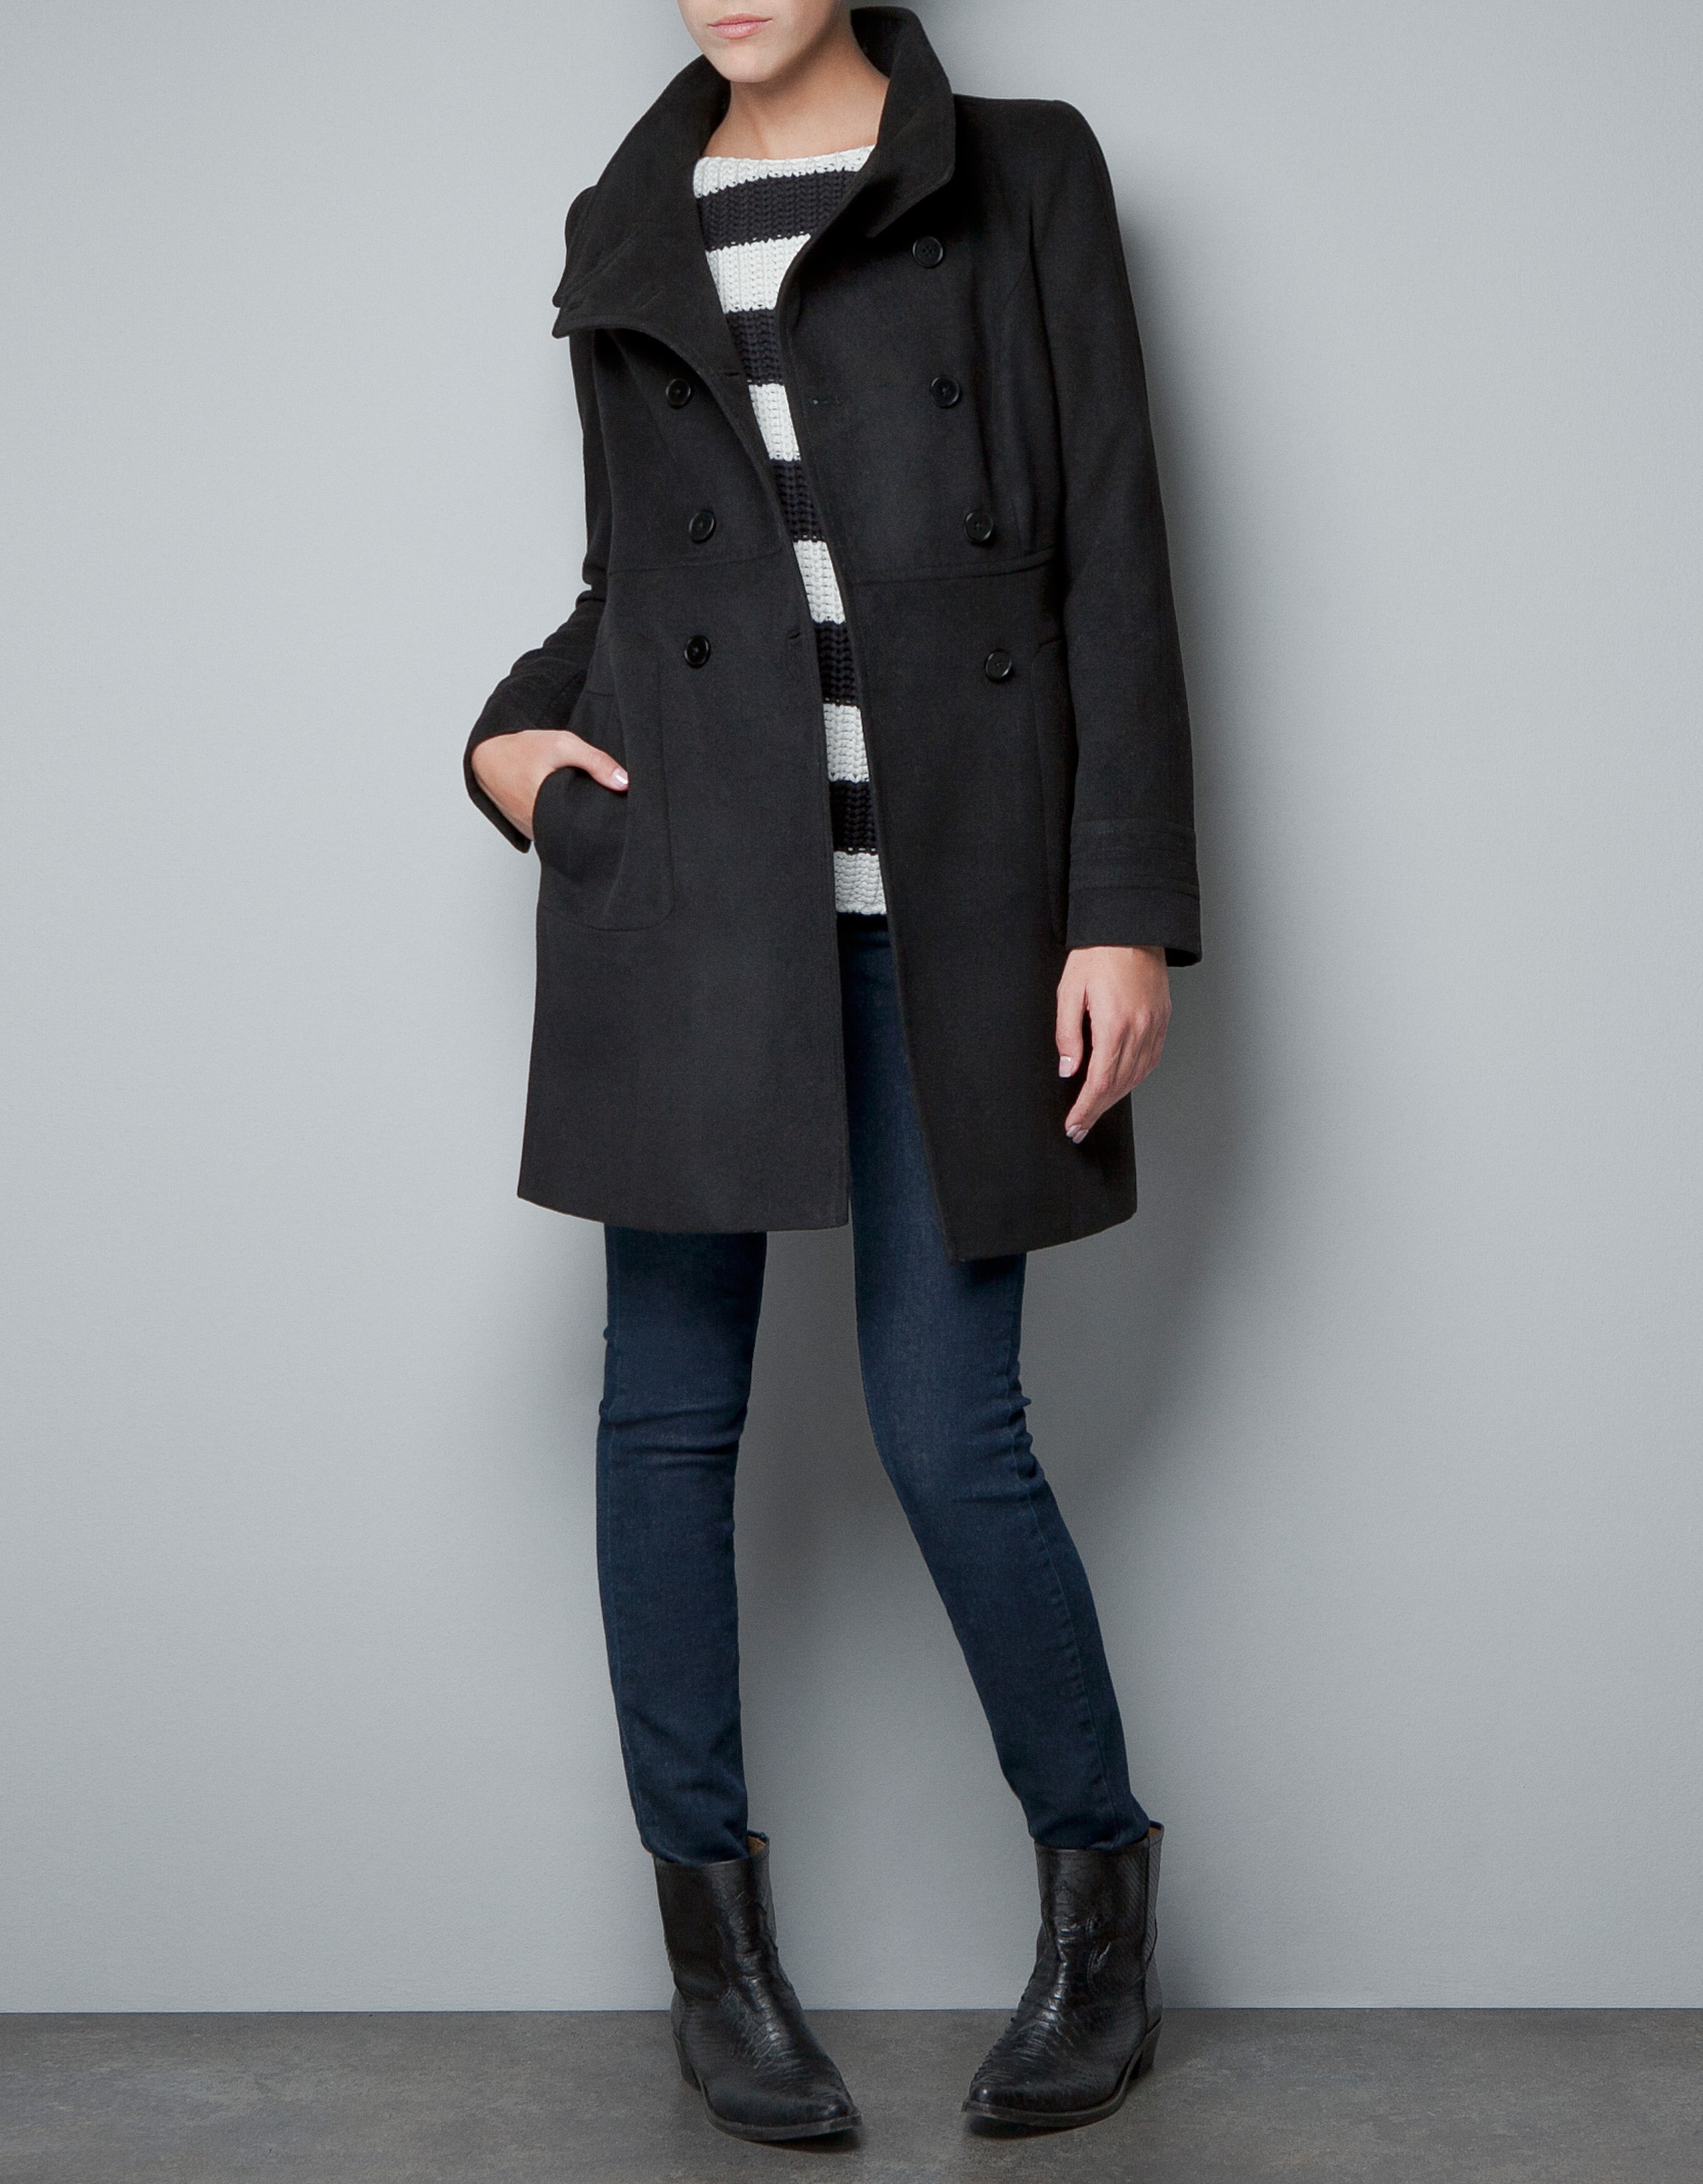 Zara Double Breasted Wool Coat in Black | Lyst